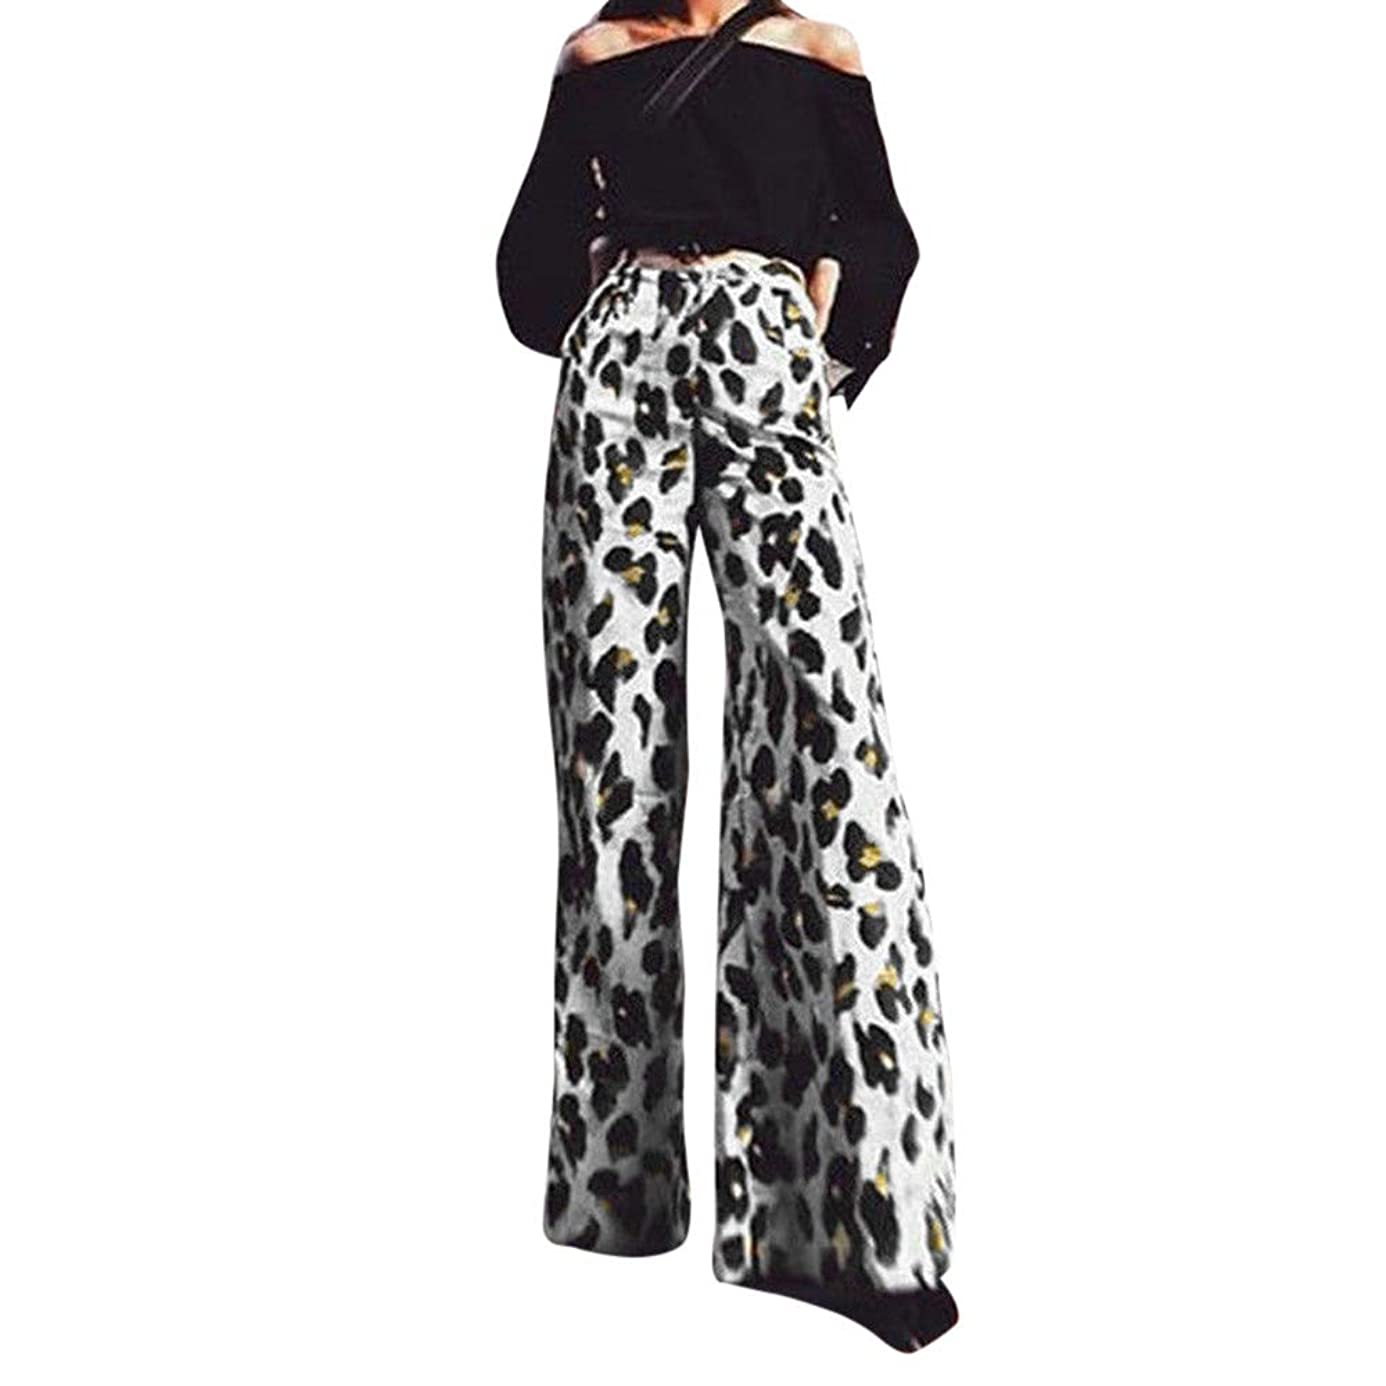 hositor Ripped Jeans for Women, Ladies Fashion Sexy Leopard Print Long Pants Elastic Waist Wide Leg Pants